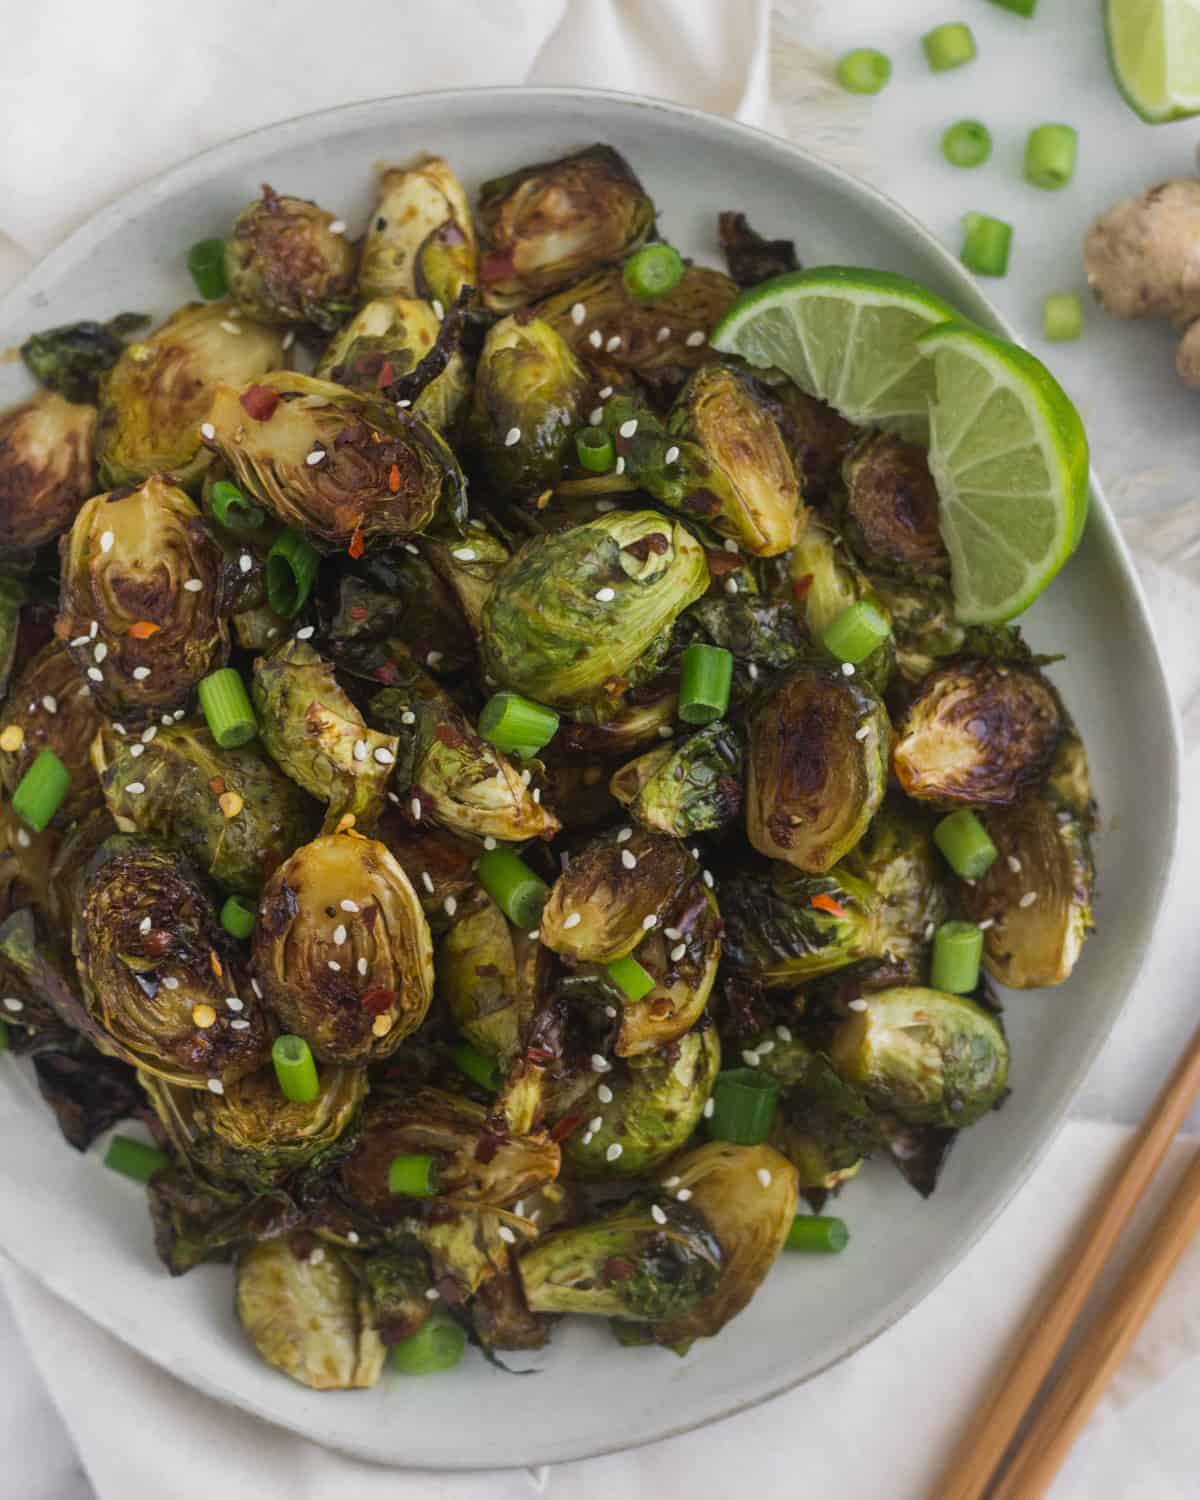 Plate of miso glazed brussels sprouts garnished with sesame seeds, green onion, and lime wedges surrounded by chopsticks and more green onions and limes